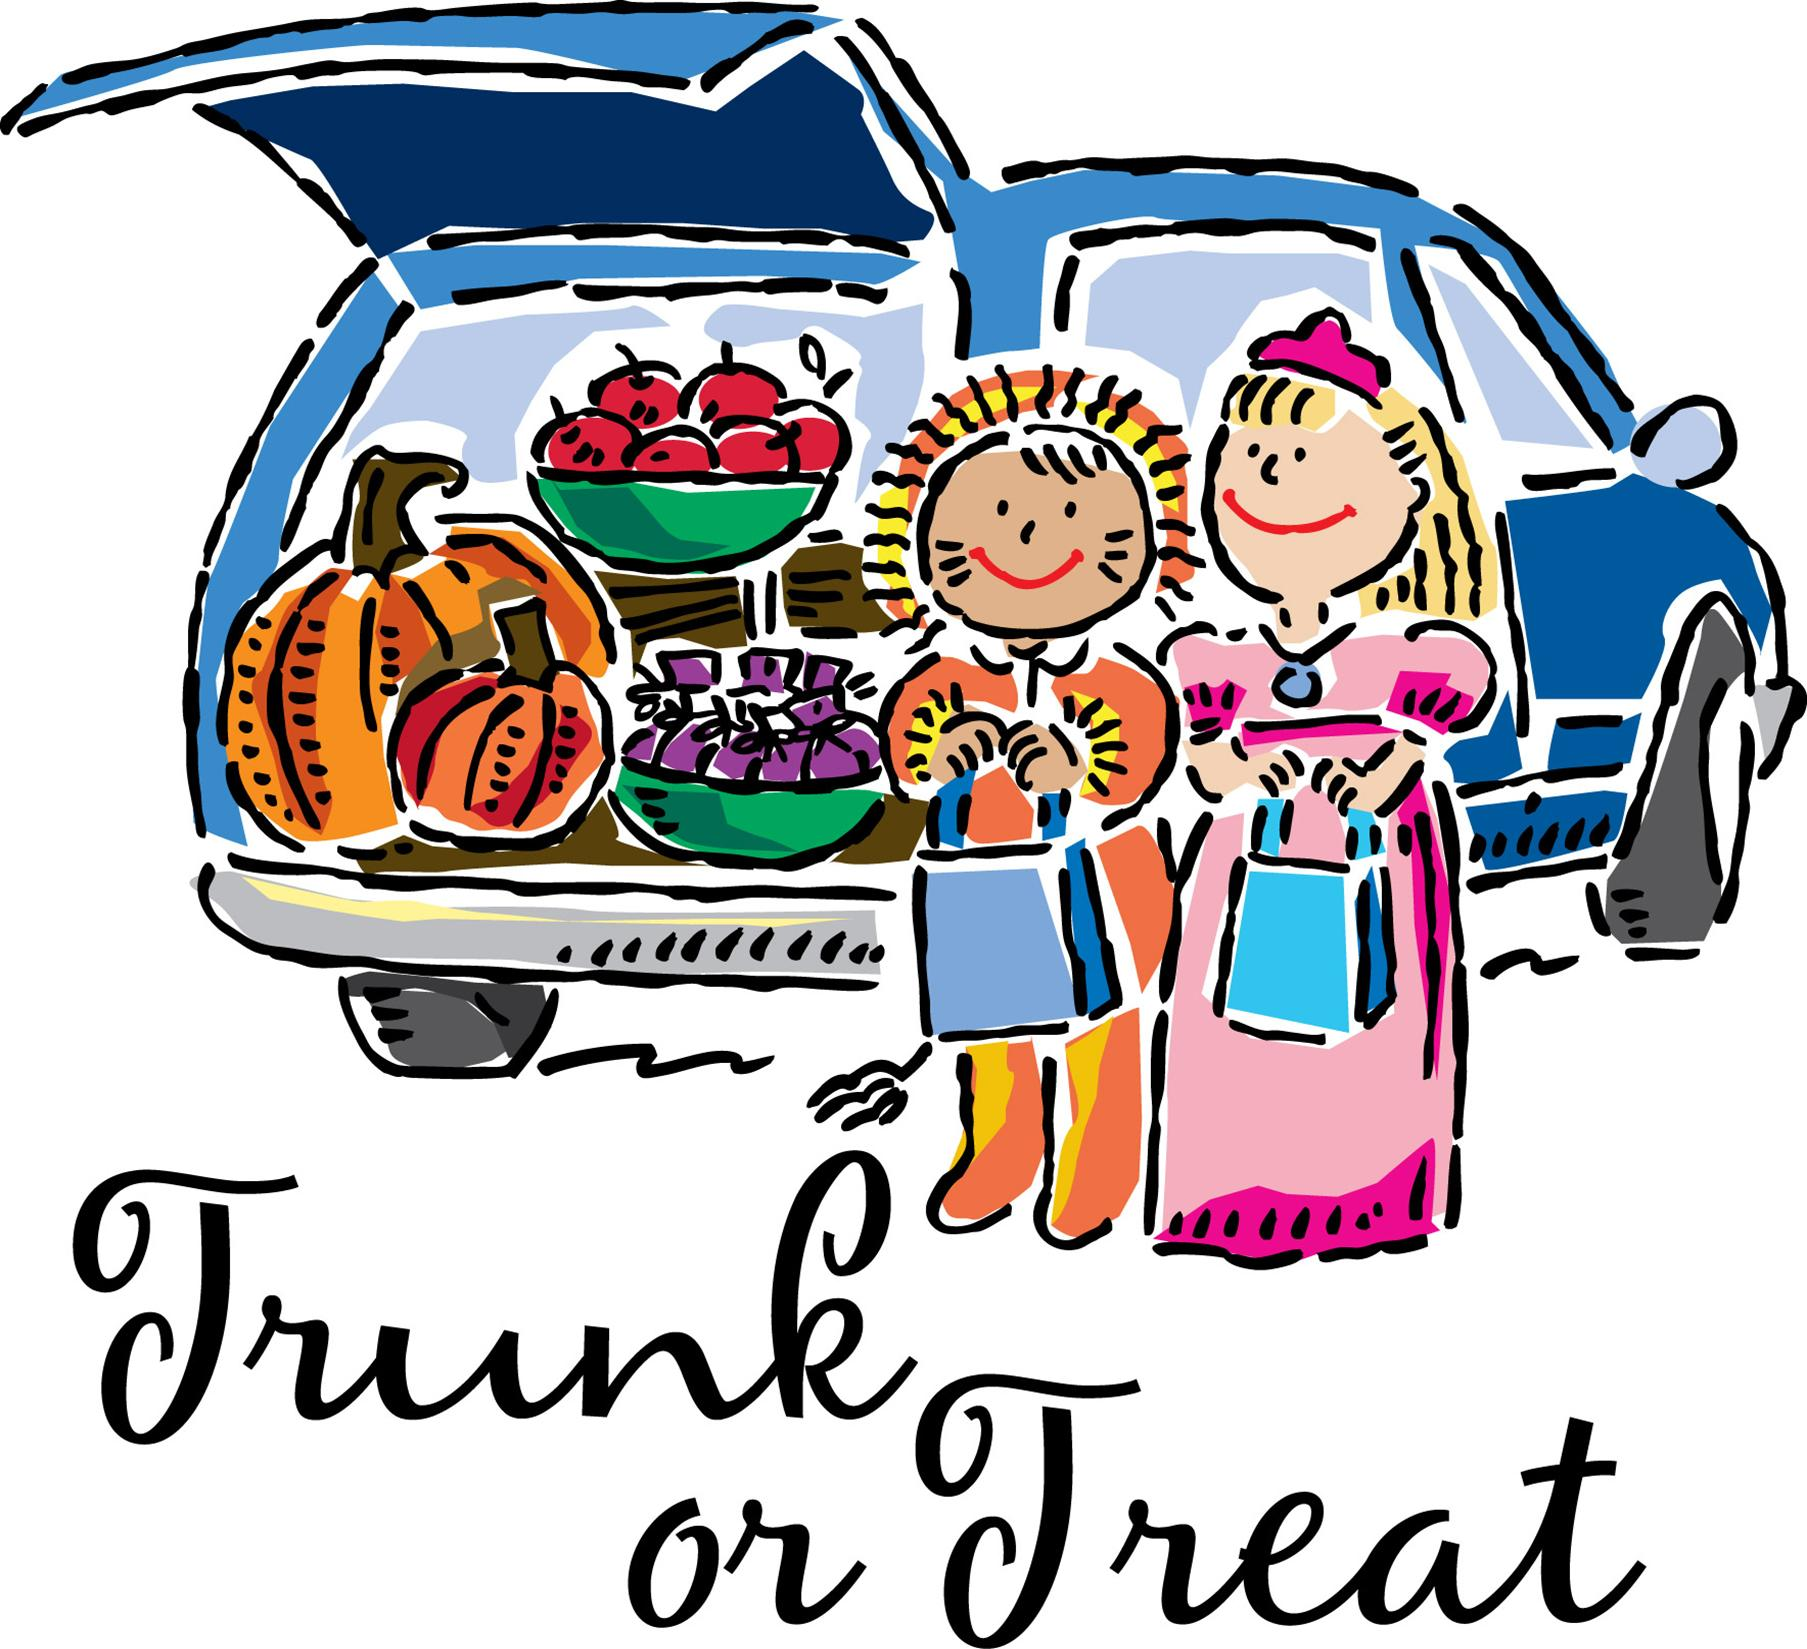 Trunk Or Treat Clip Art ... - Trunk Or Treat Clip Art